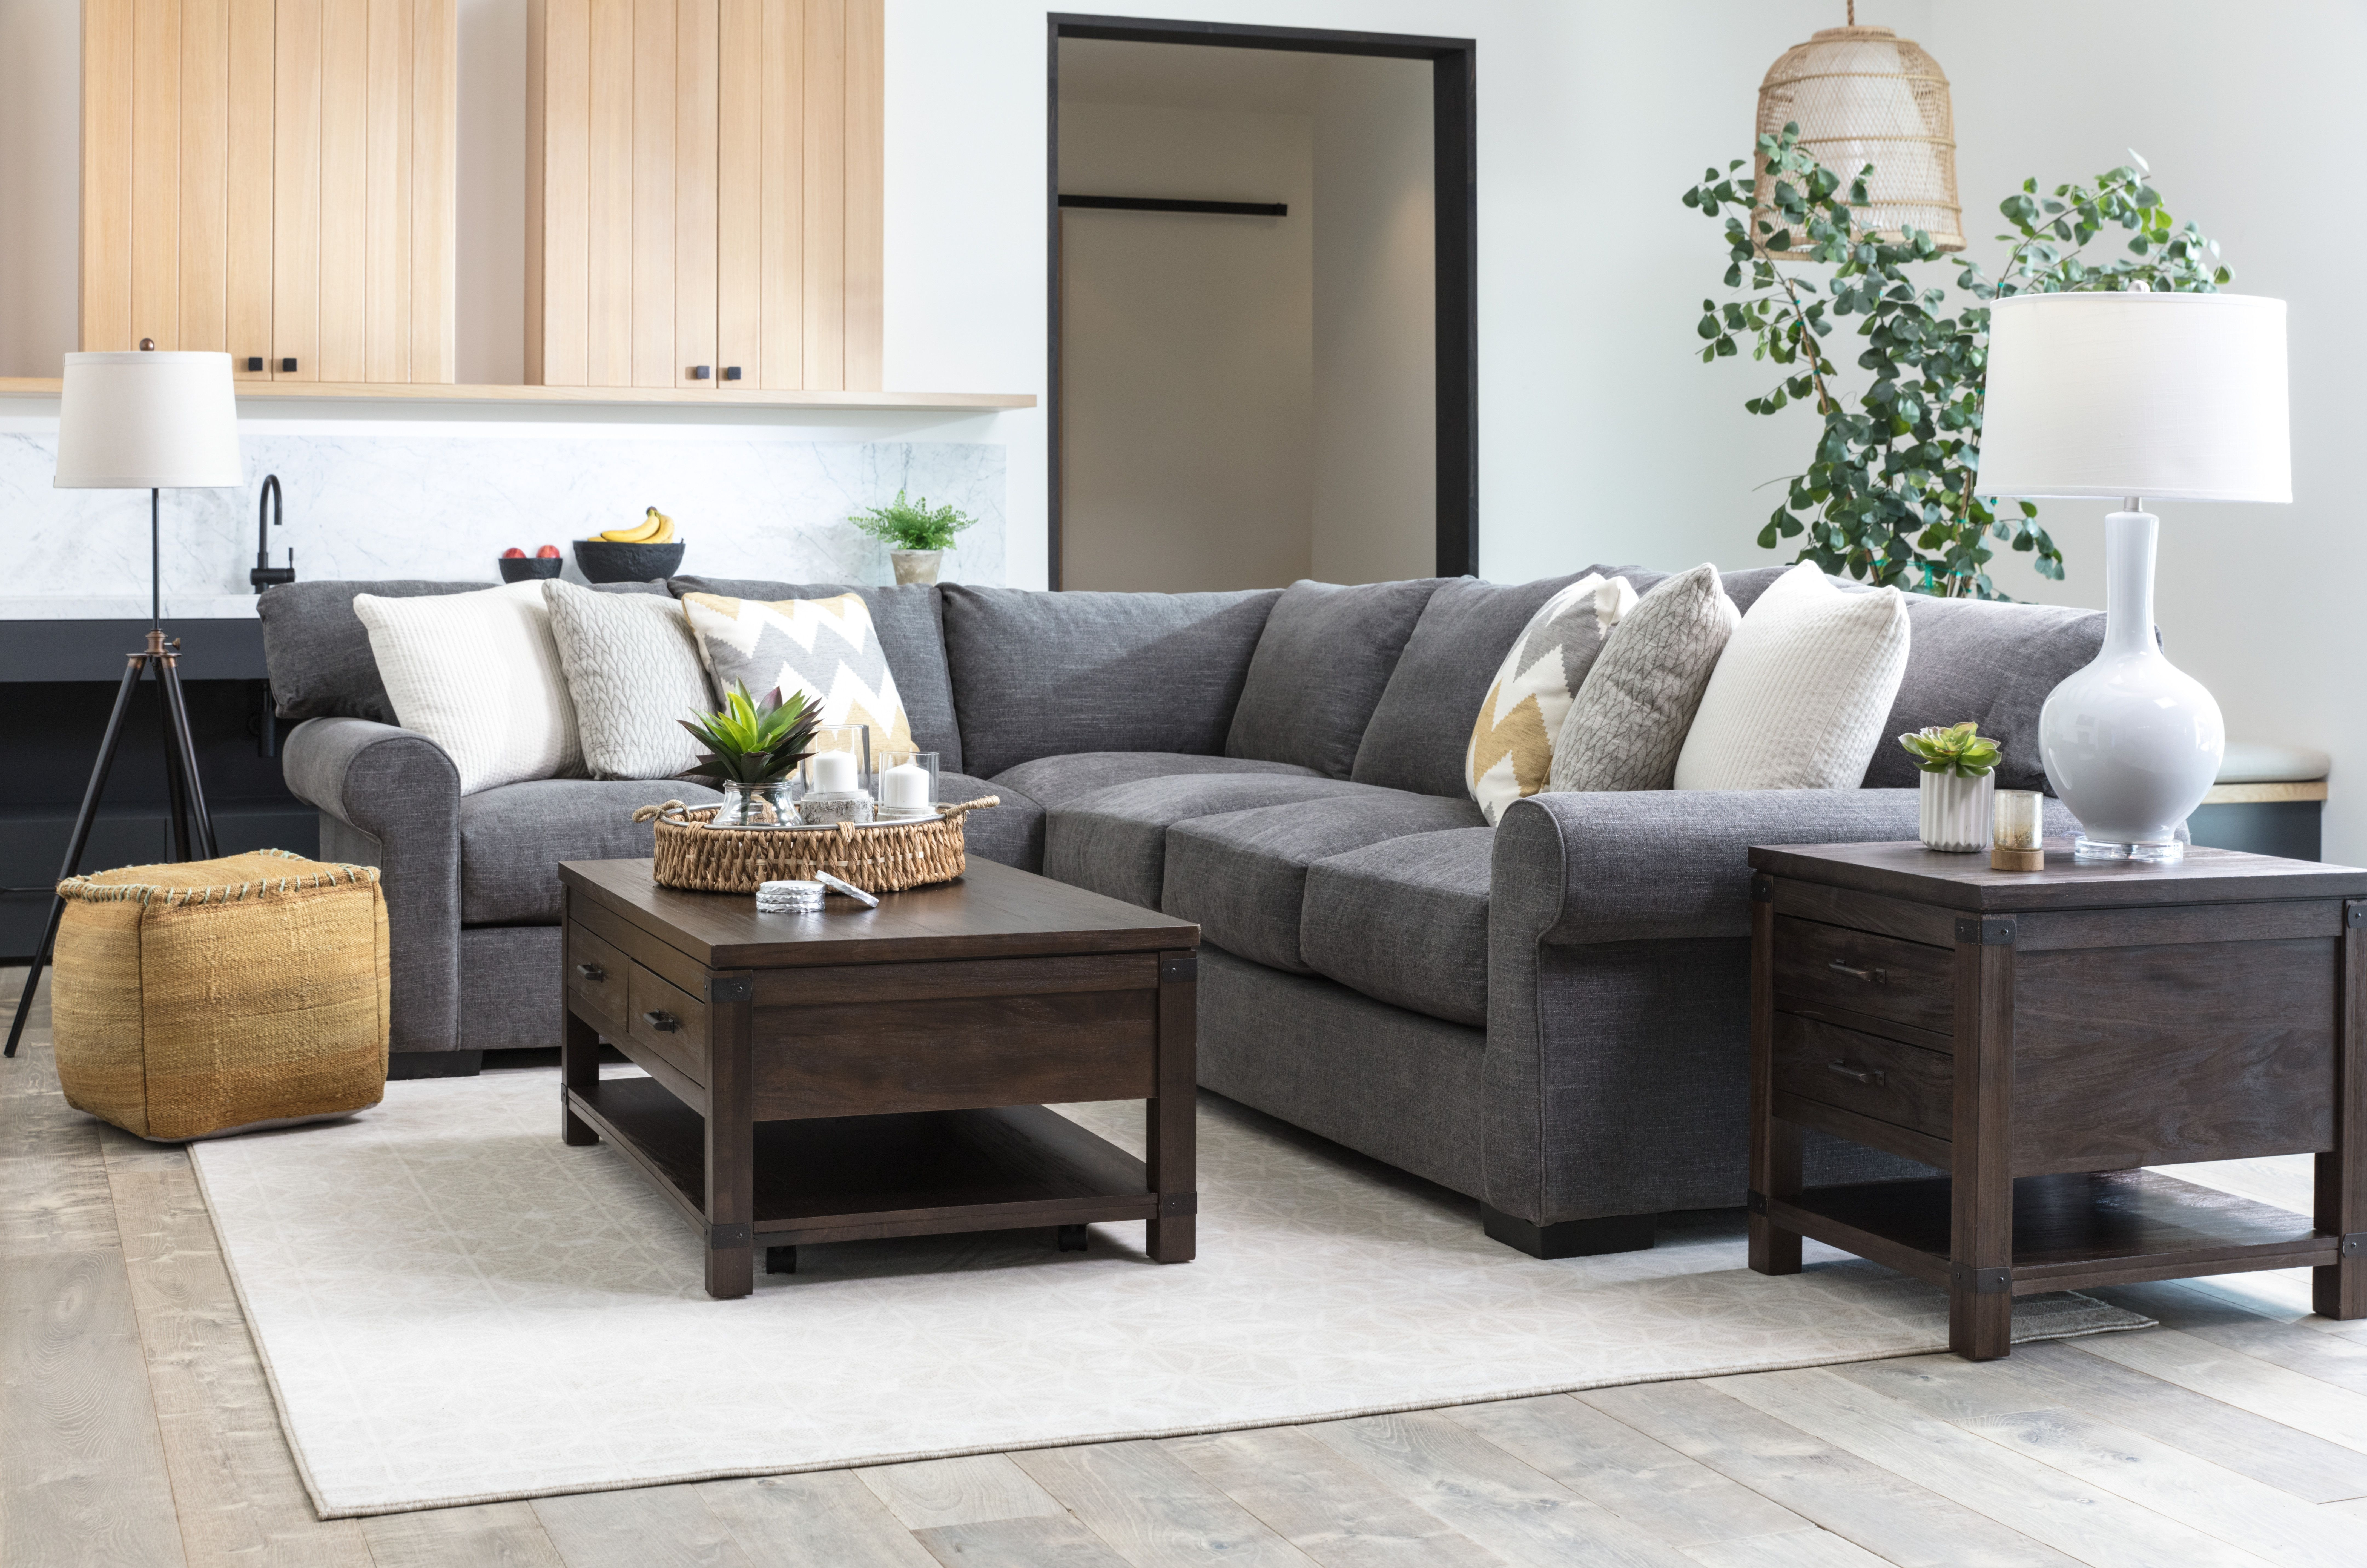 Aurora 2 Piece Sectional (Image 6 of 25)